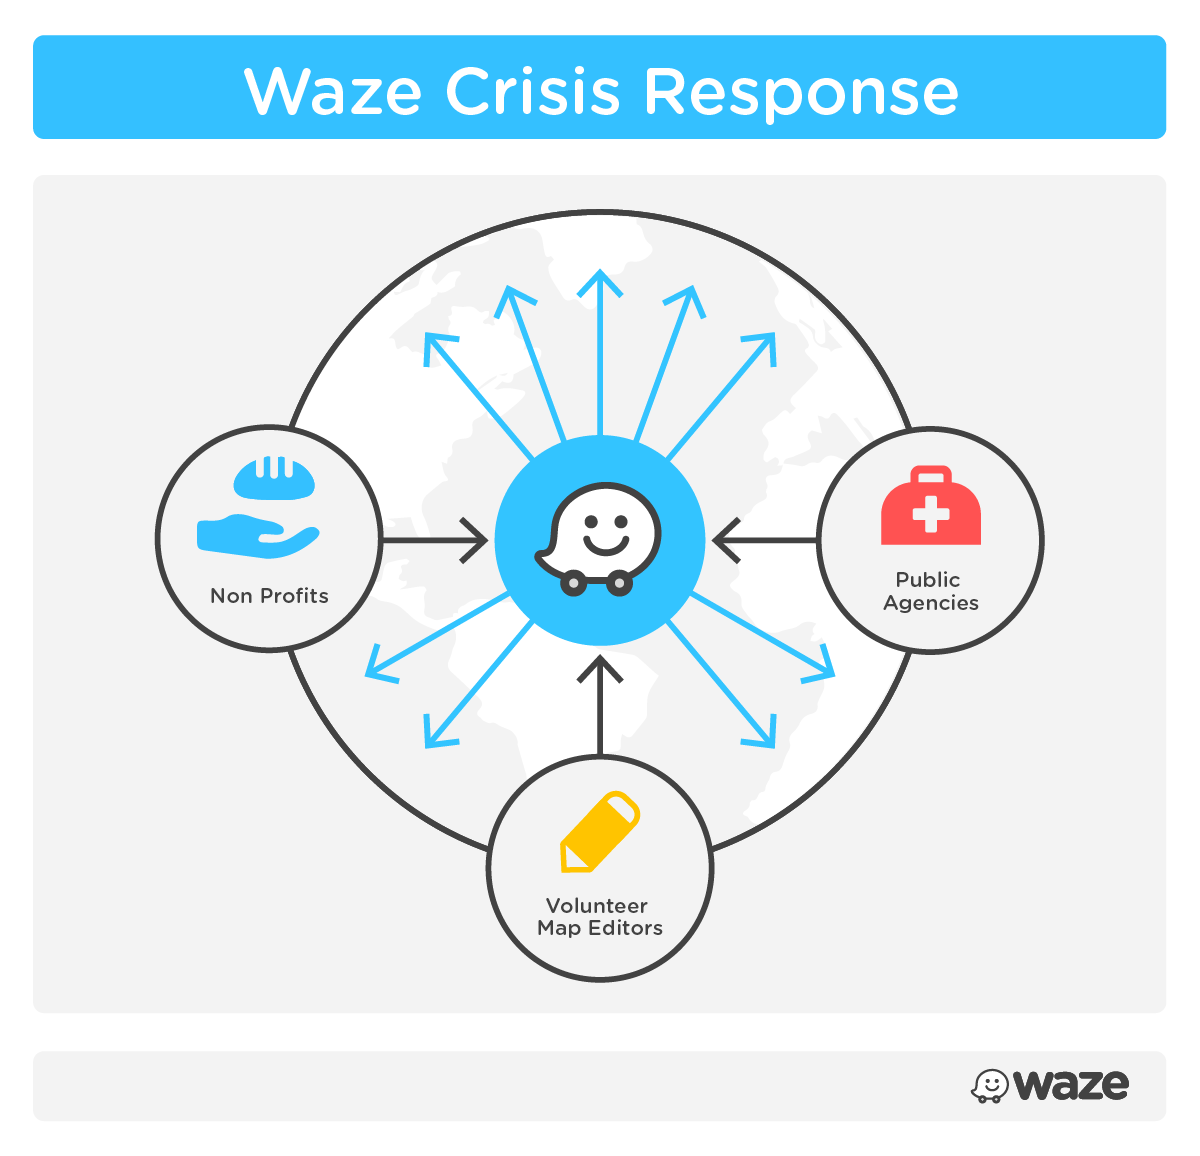 Waze Crisis Response includes exchanging information across Non Profits, Public Agencies, and Volunteer Map Editors.